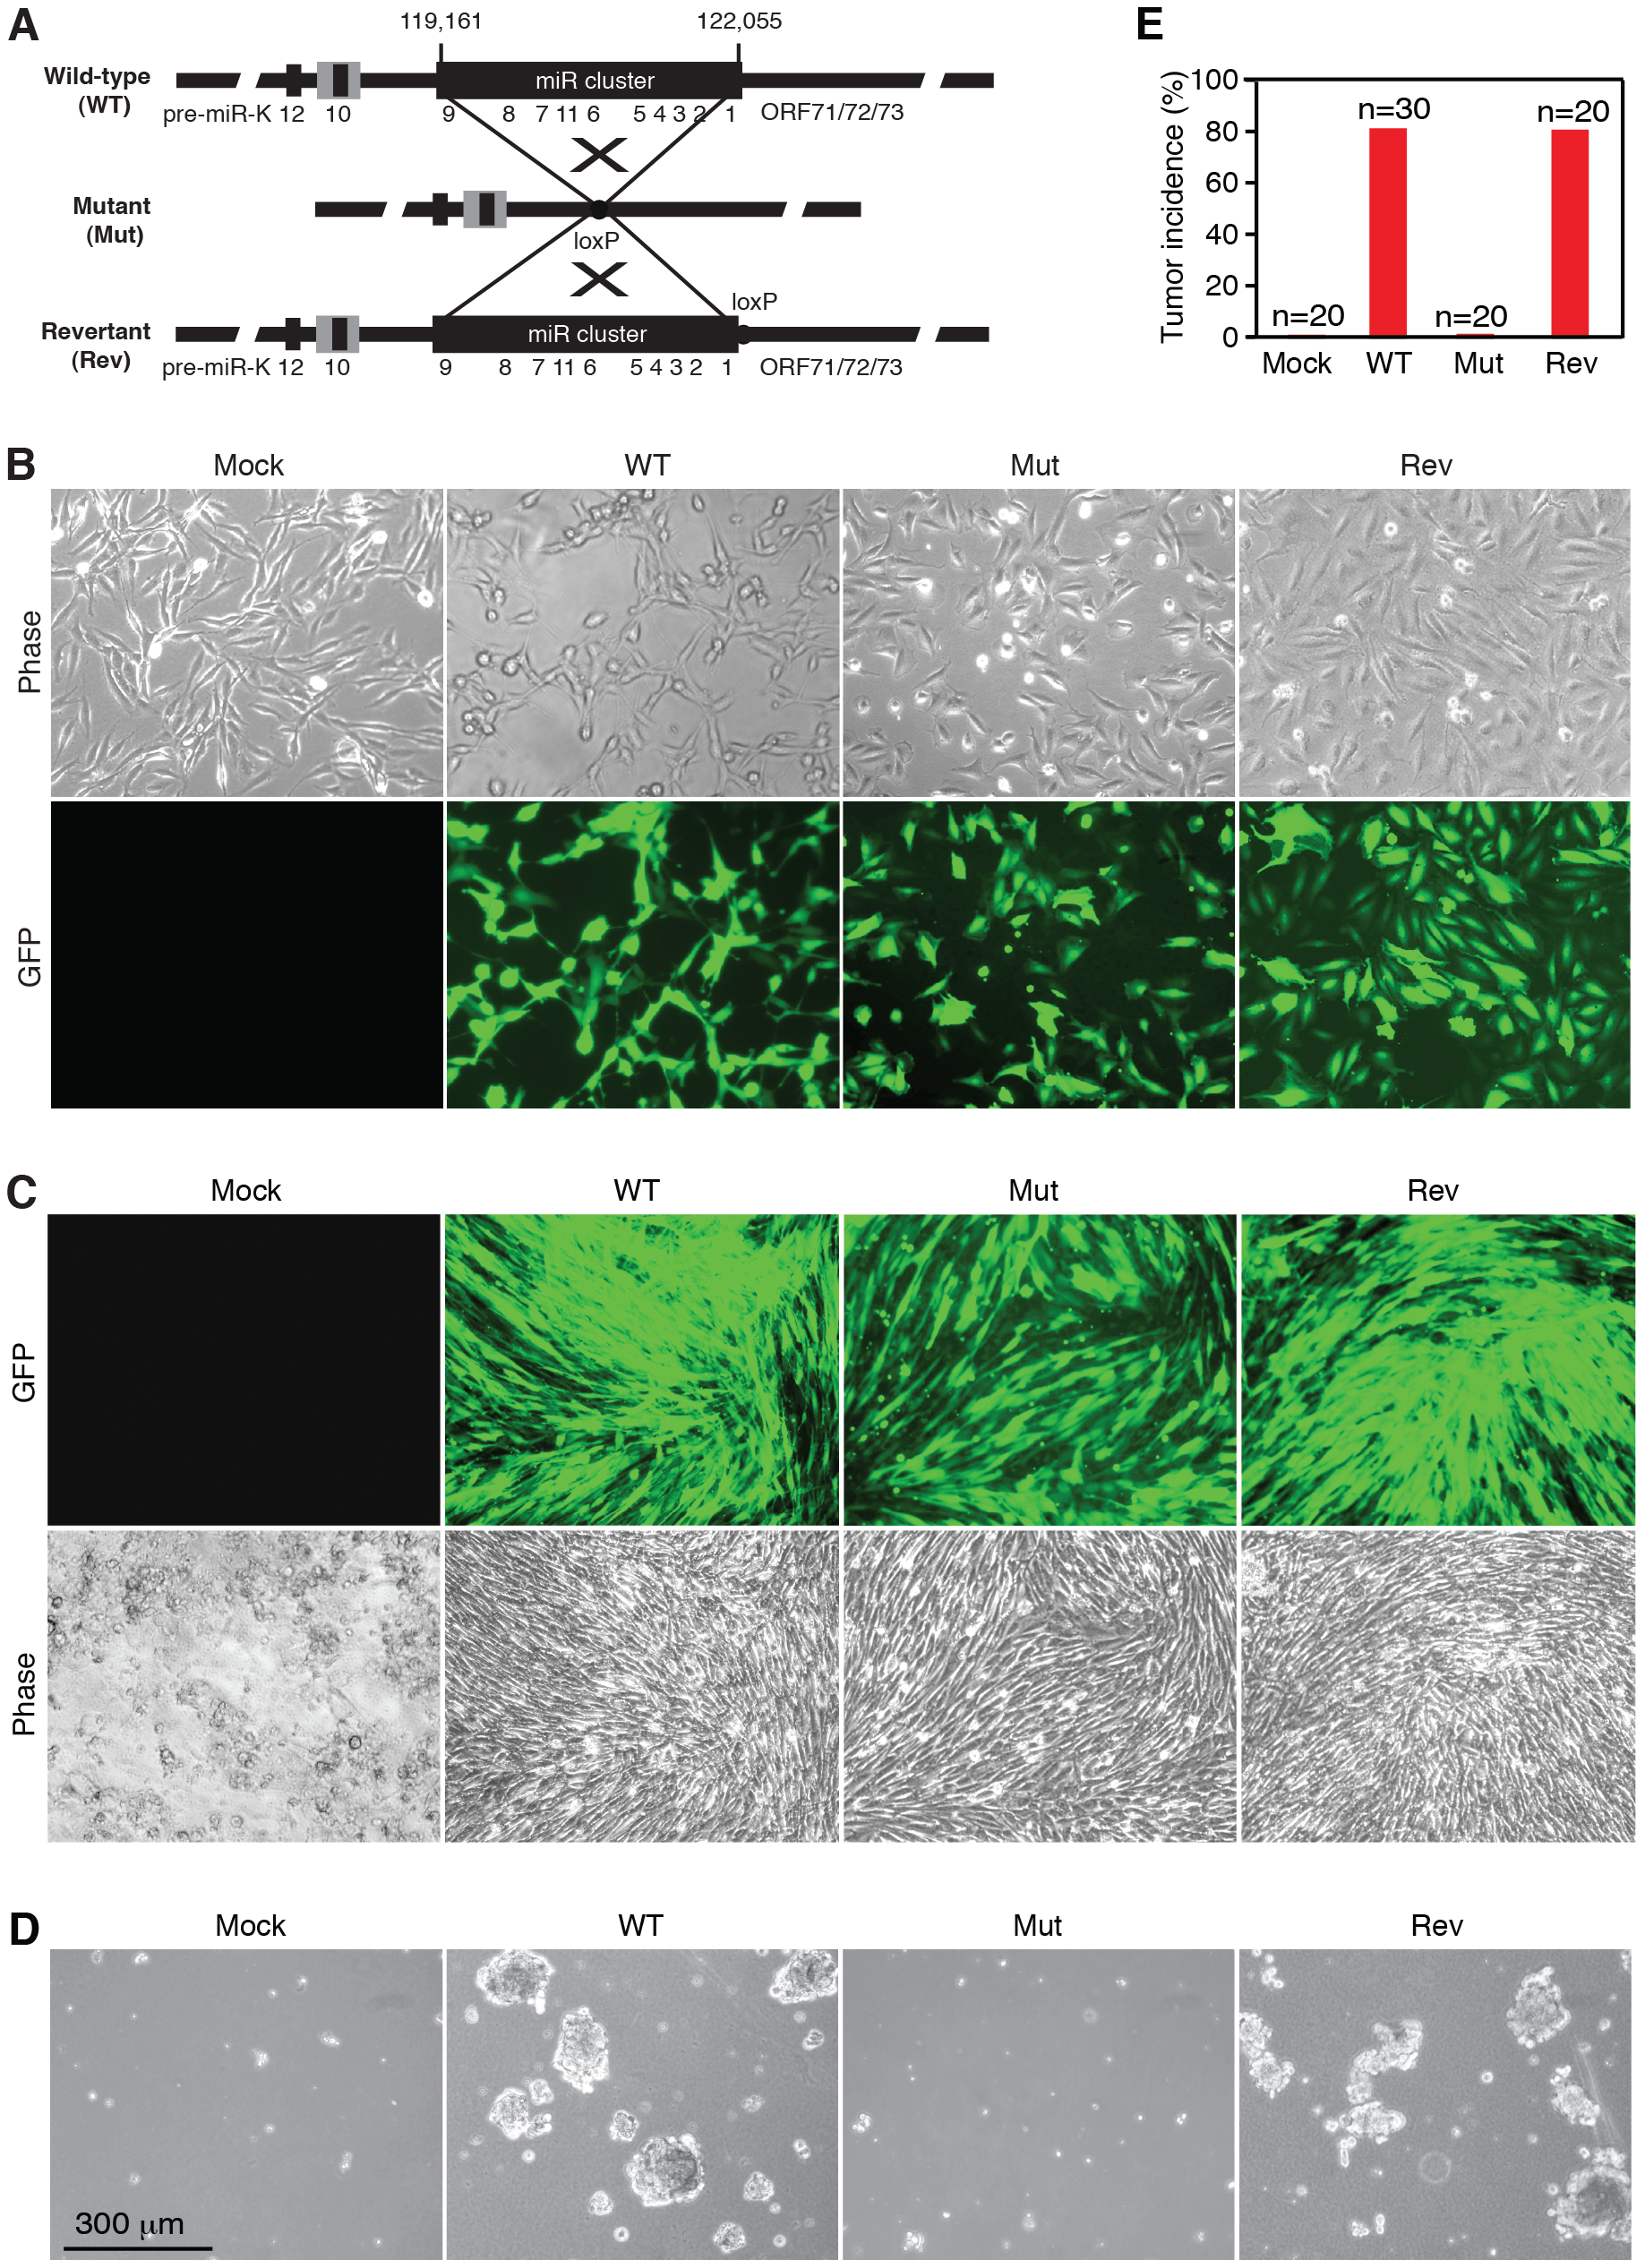 KSHV miR cluster is required for cellular transformation and tumorigenesis.